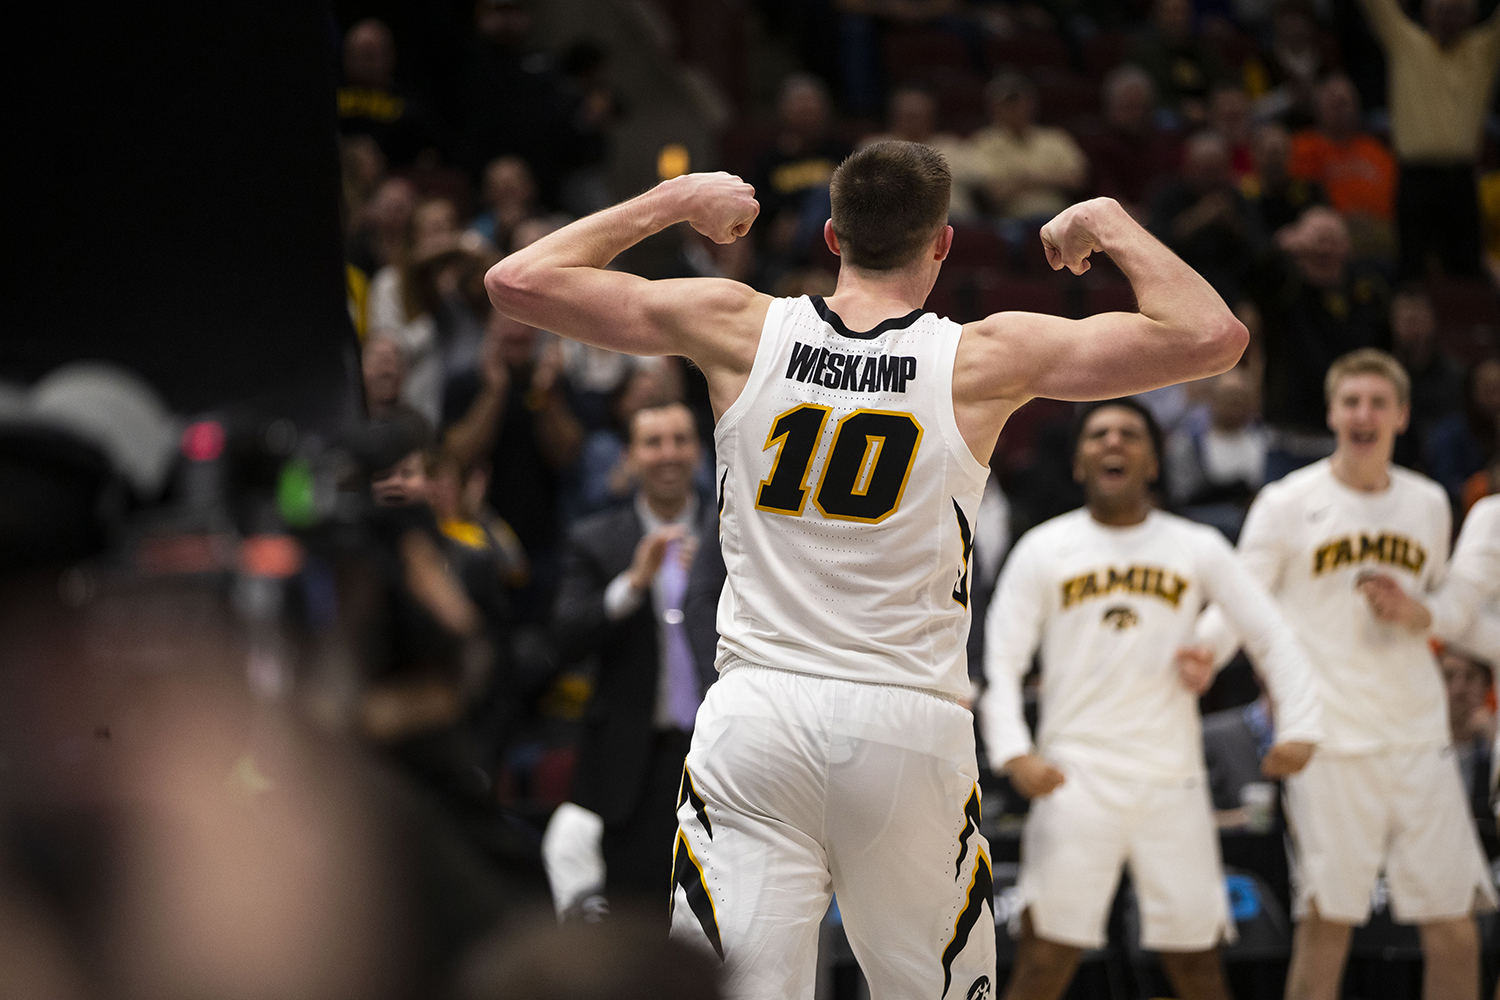 Iowa forward Joe Wieskamp flexes after dunking during the Iowa/Illinois Big Ten Tournament men's basketball game in the United Center in Chicago on Thursday, March 14, 2019. The Hawkeyes defeated the Fighting Illini, 83-62.